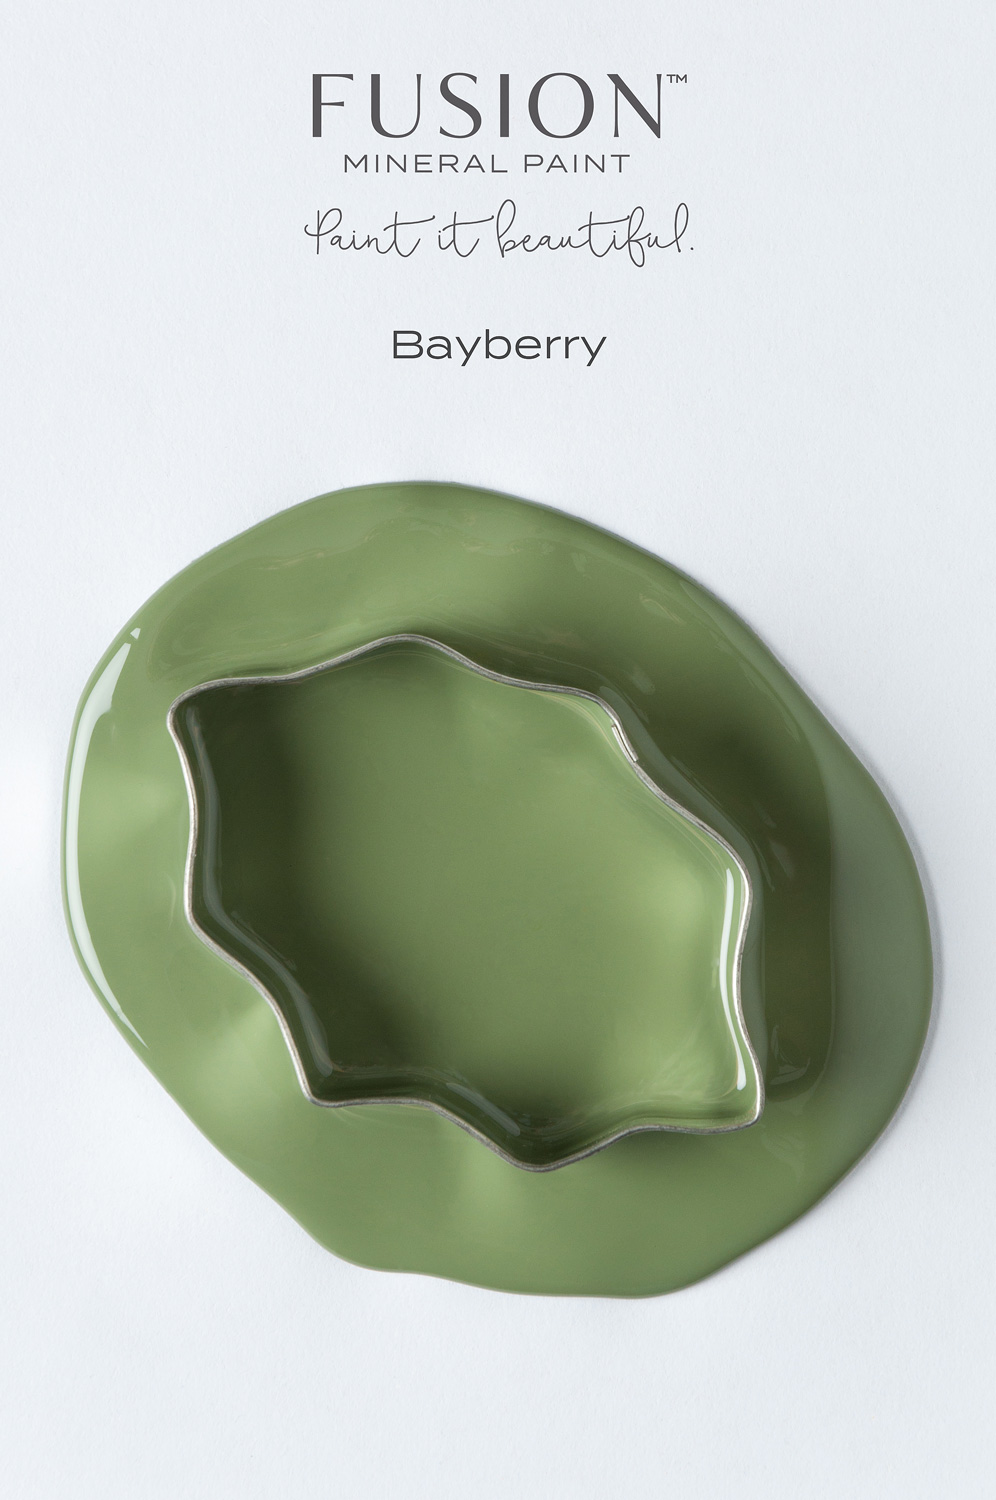 Fusion Mineral Paint in the colour Bayberry. It's the perfect shade of green for the Holiday Season.